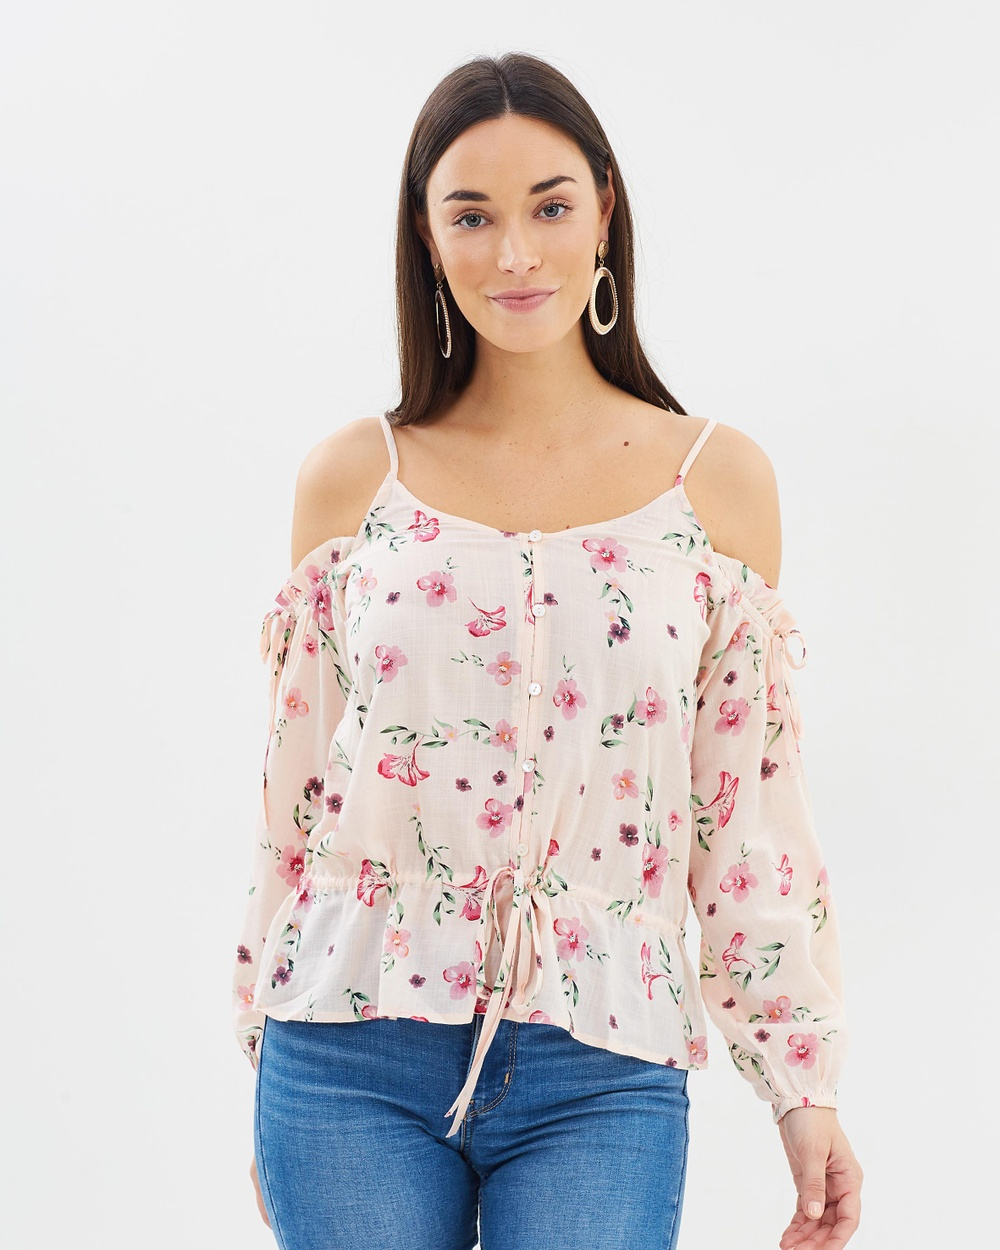 Dorothy Perkins Tie Cold Shoulder Top Tops Peach Tie Cold Shoulder Top